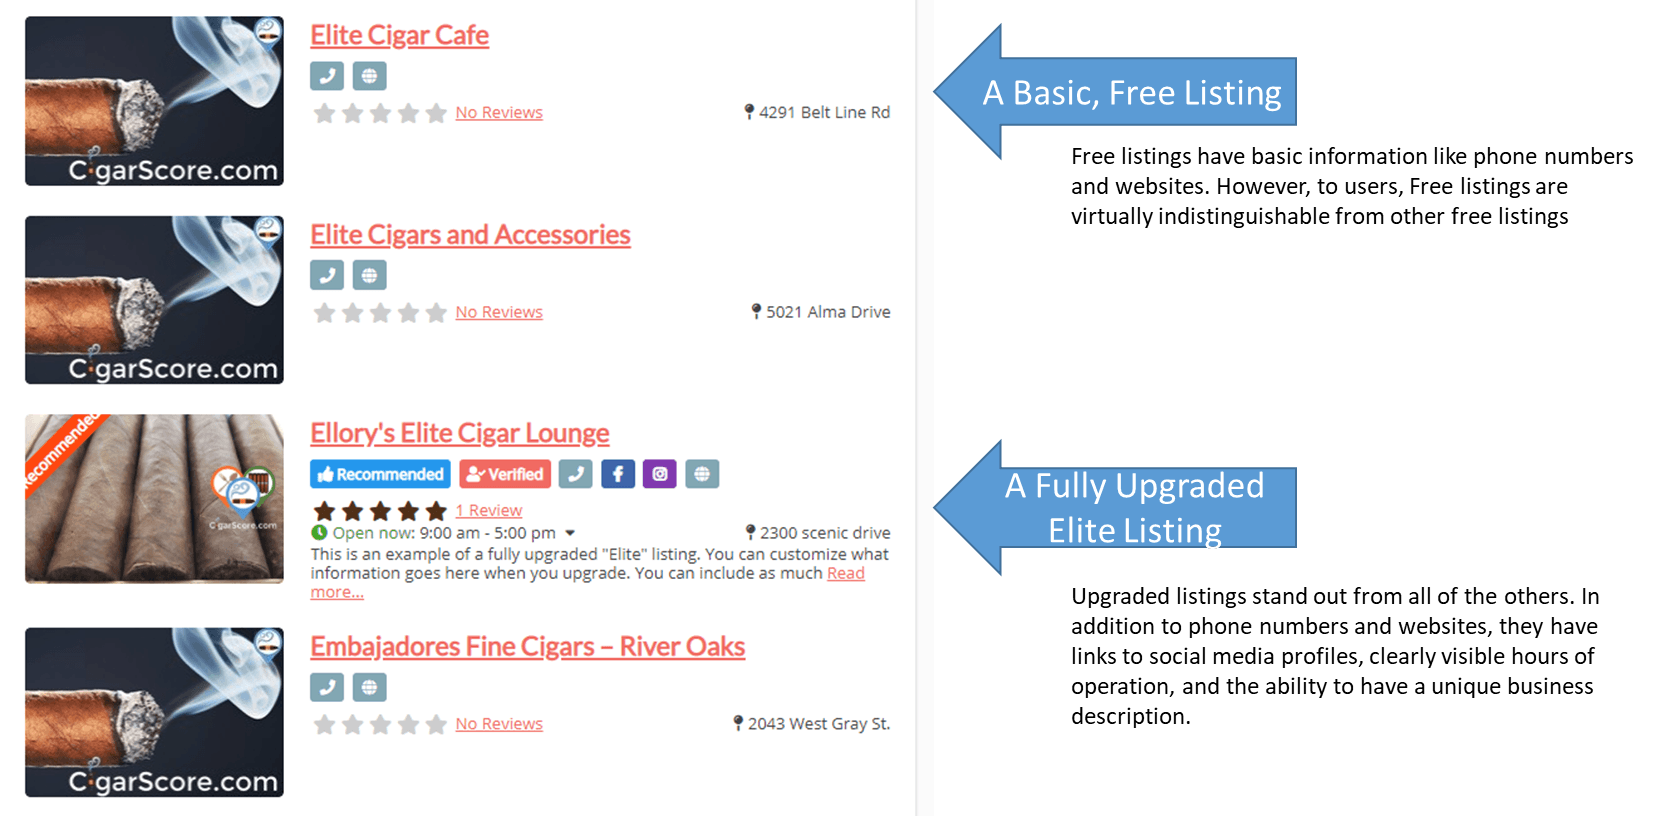 free vs upgraded listing layouts